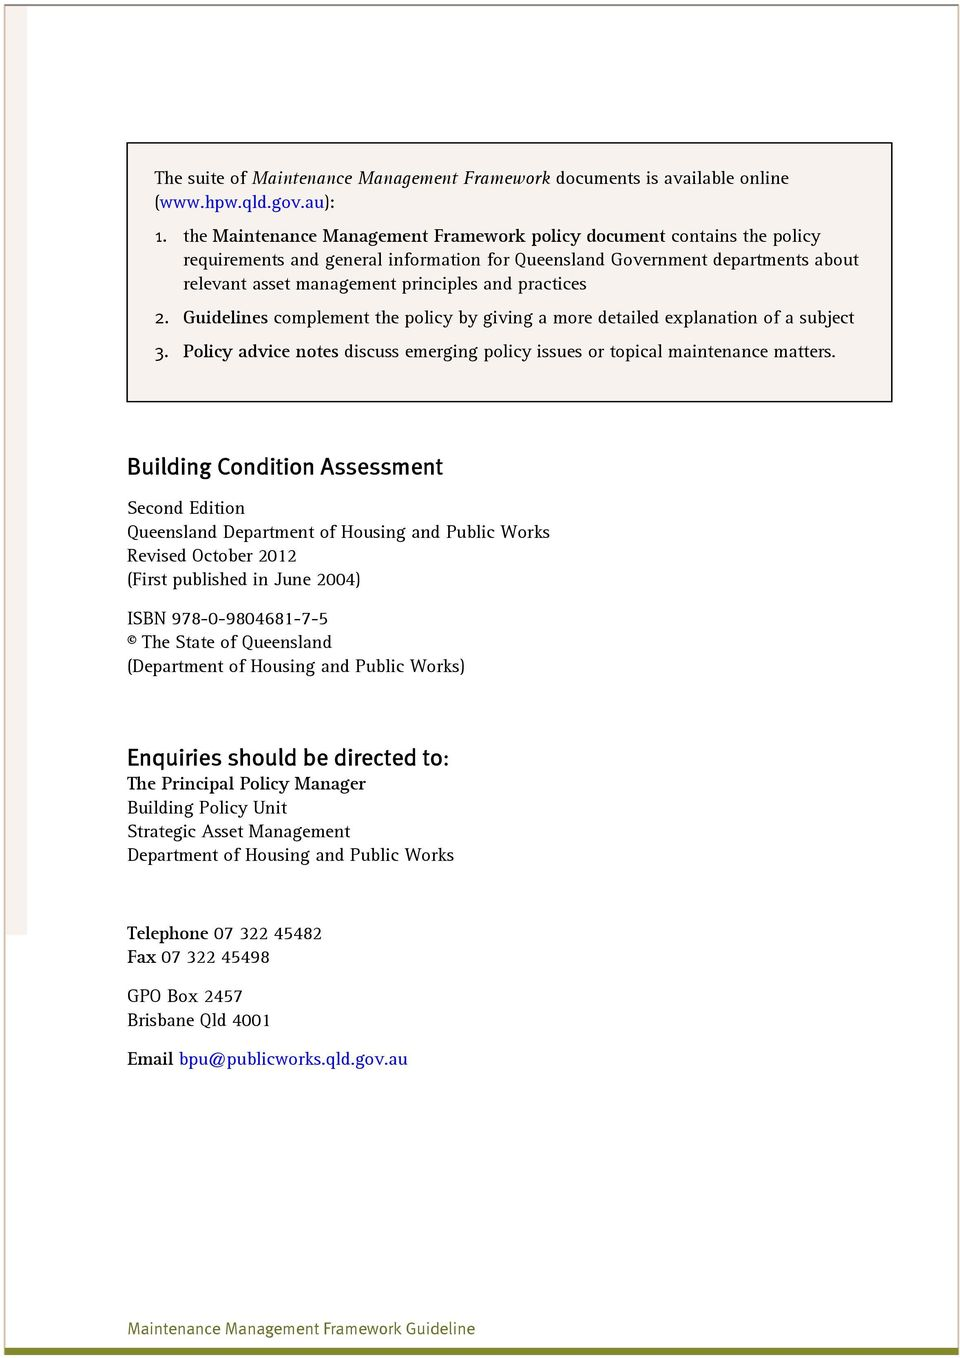 Building Condition Assessment - PDF